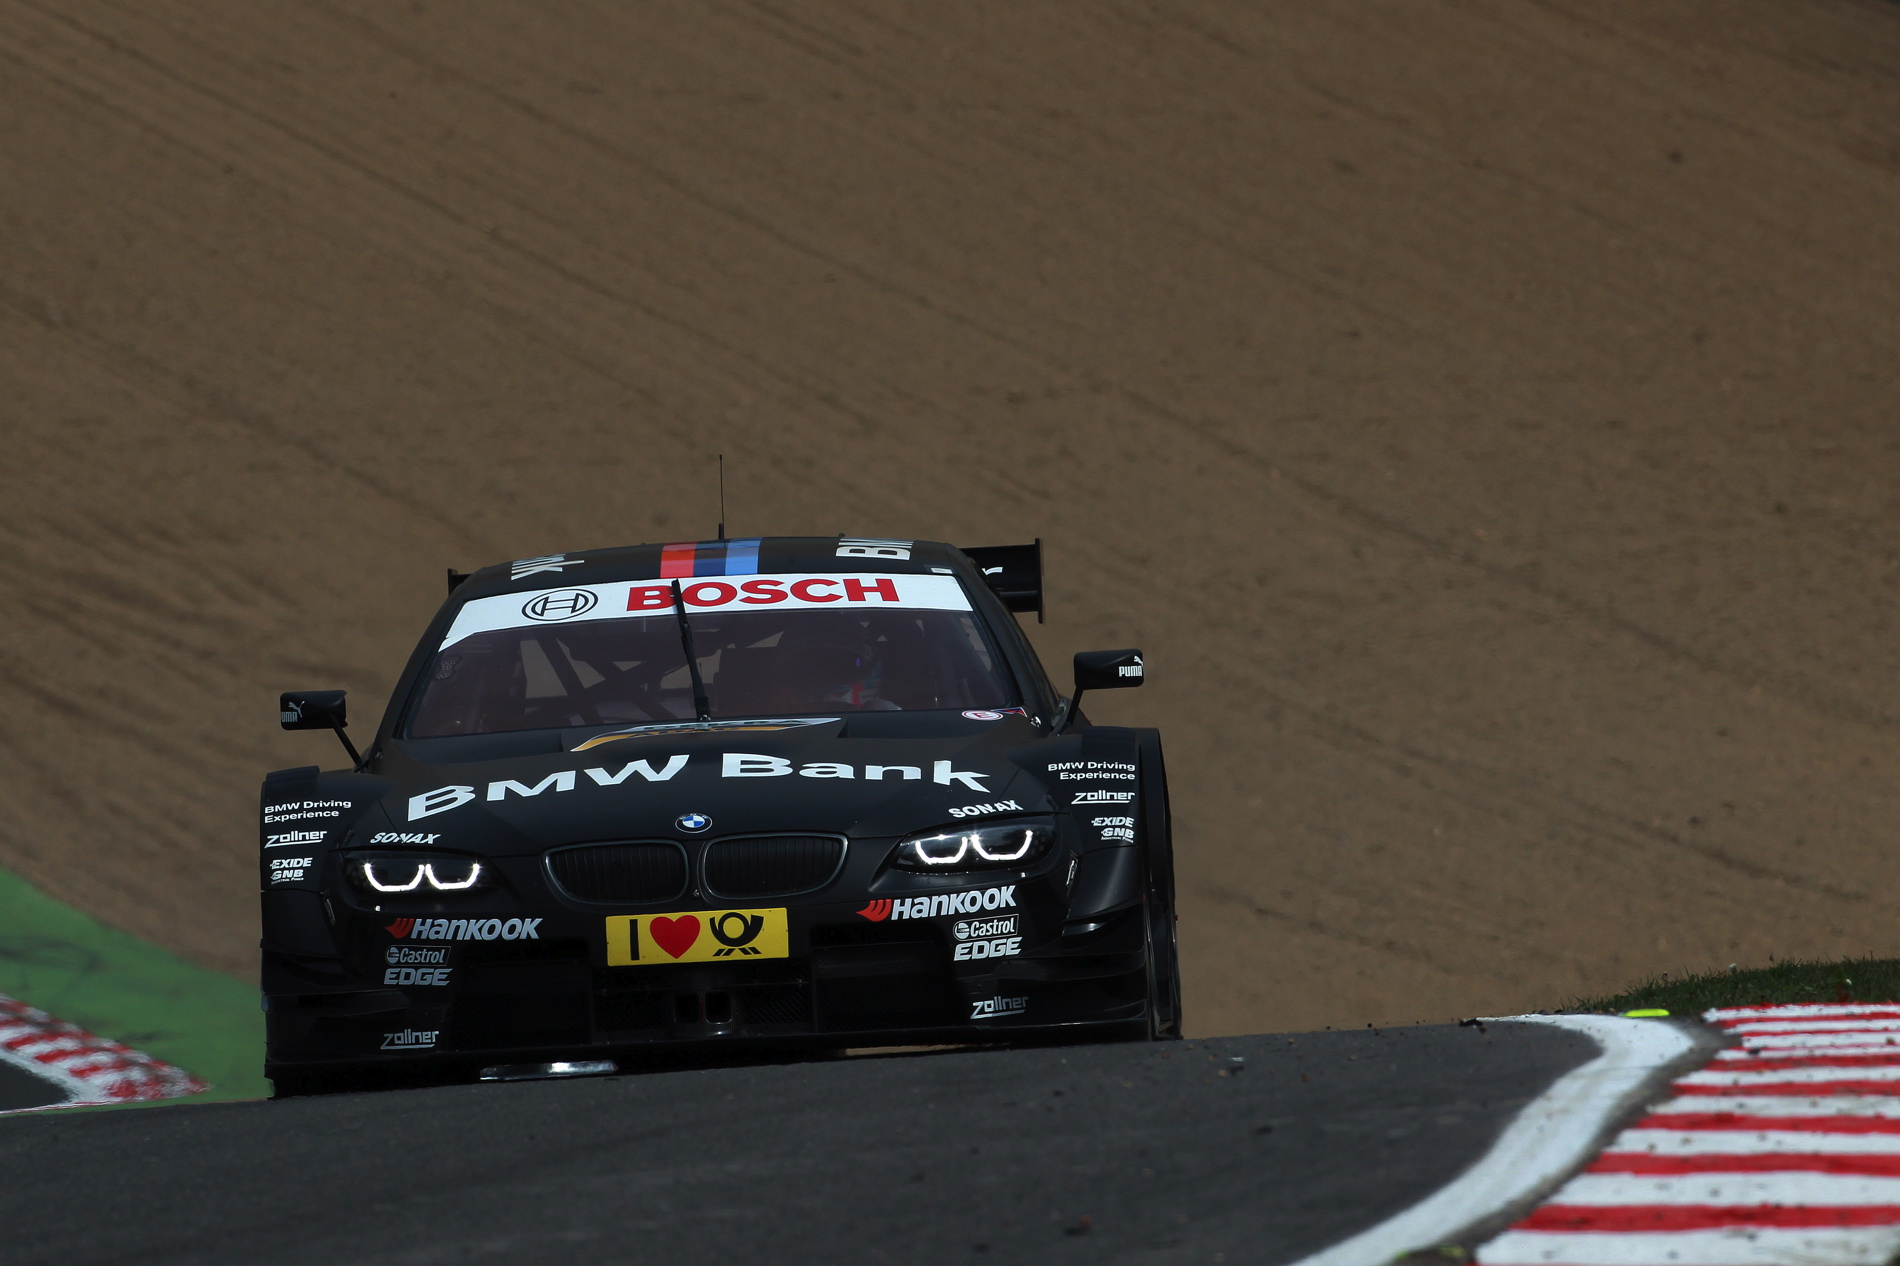 Podium At Brands Hatch For Dtm Champion Bruno Spengler Imo X6 Lucky 01 655x436